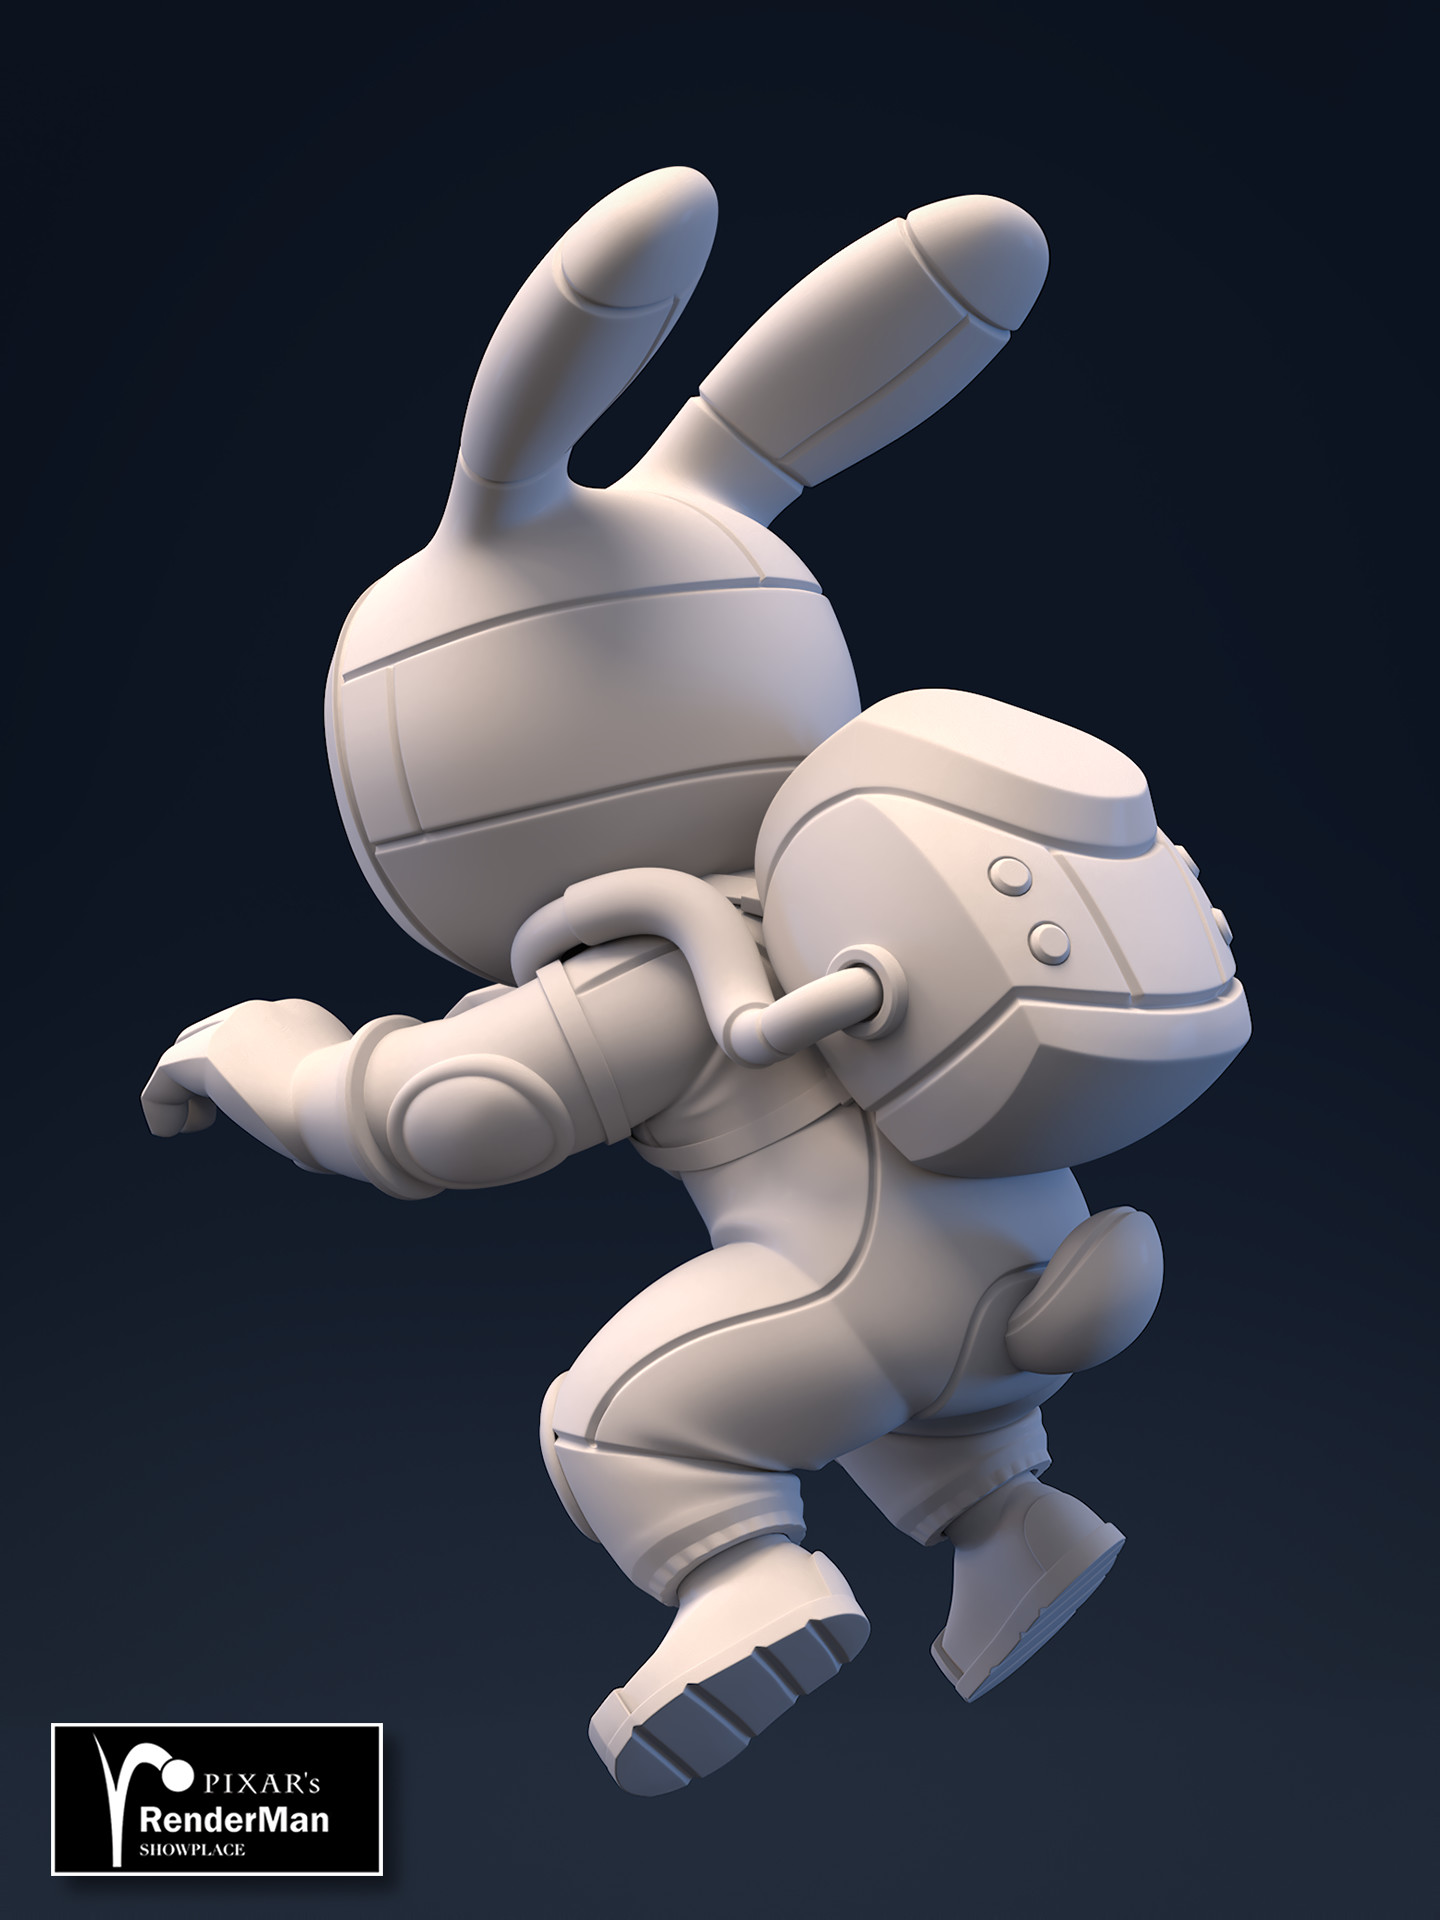 Brice laville saint martin rocket rabbit retopo back awards